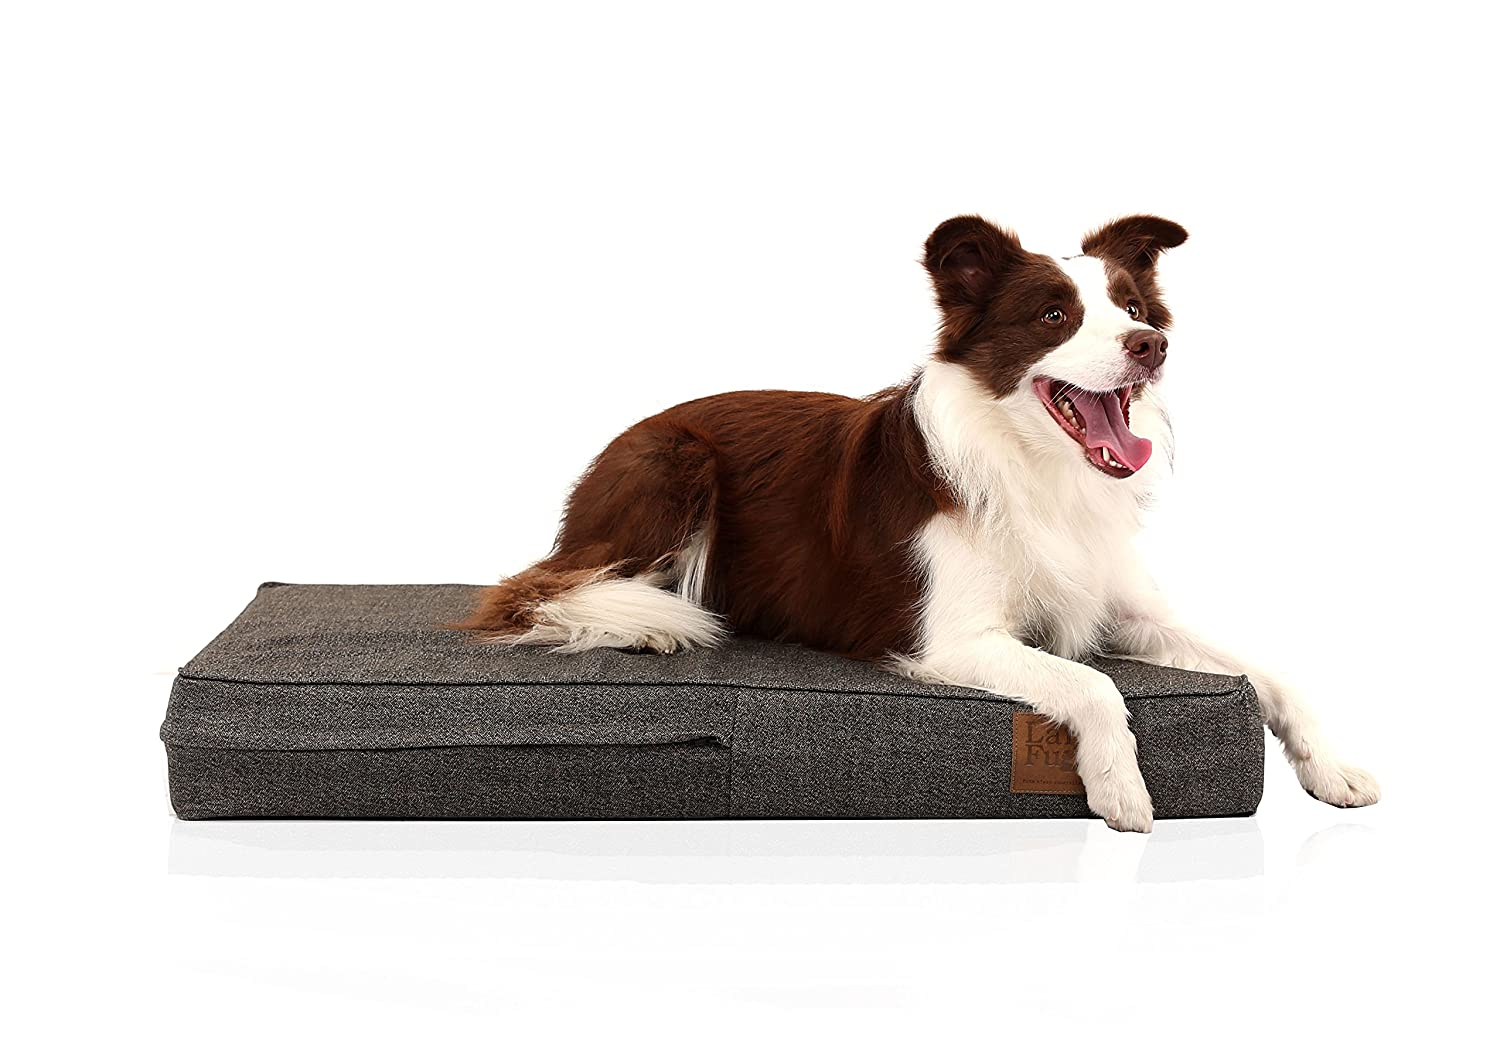 Amazon.com: Laifug Orthopedic Memory Foam Pet/Dog Bed (Medium34x22x4, Black Coffee) with Durable Water Proof Liner and Removable Designer Washable ...